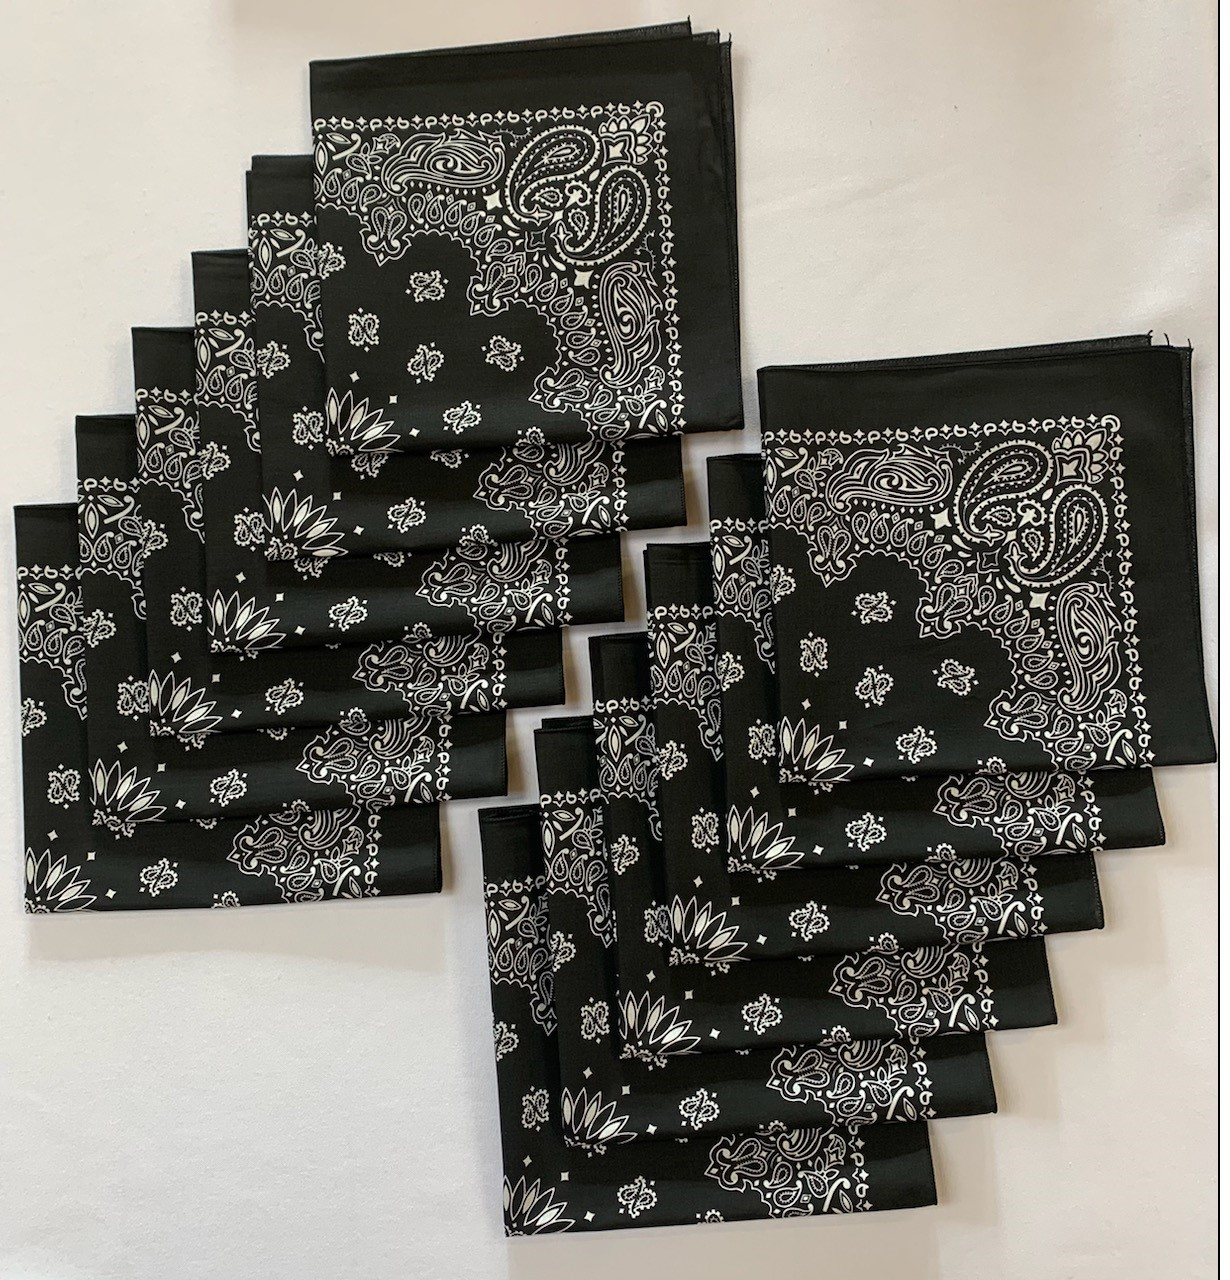 "Made in the USA Black Paisley Bandanas 12 Pk, 22"" x 22"" Cotton"